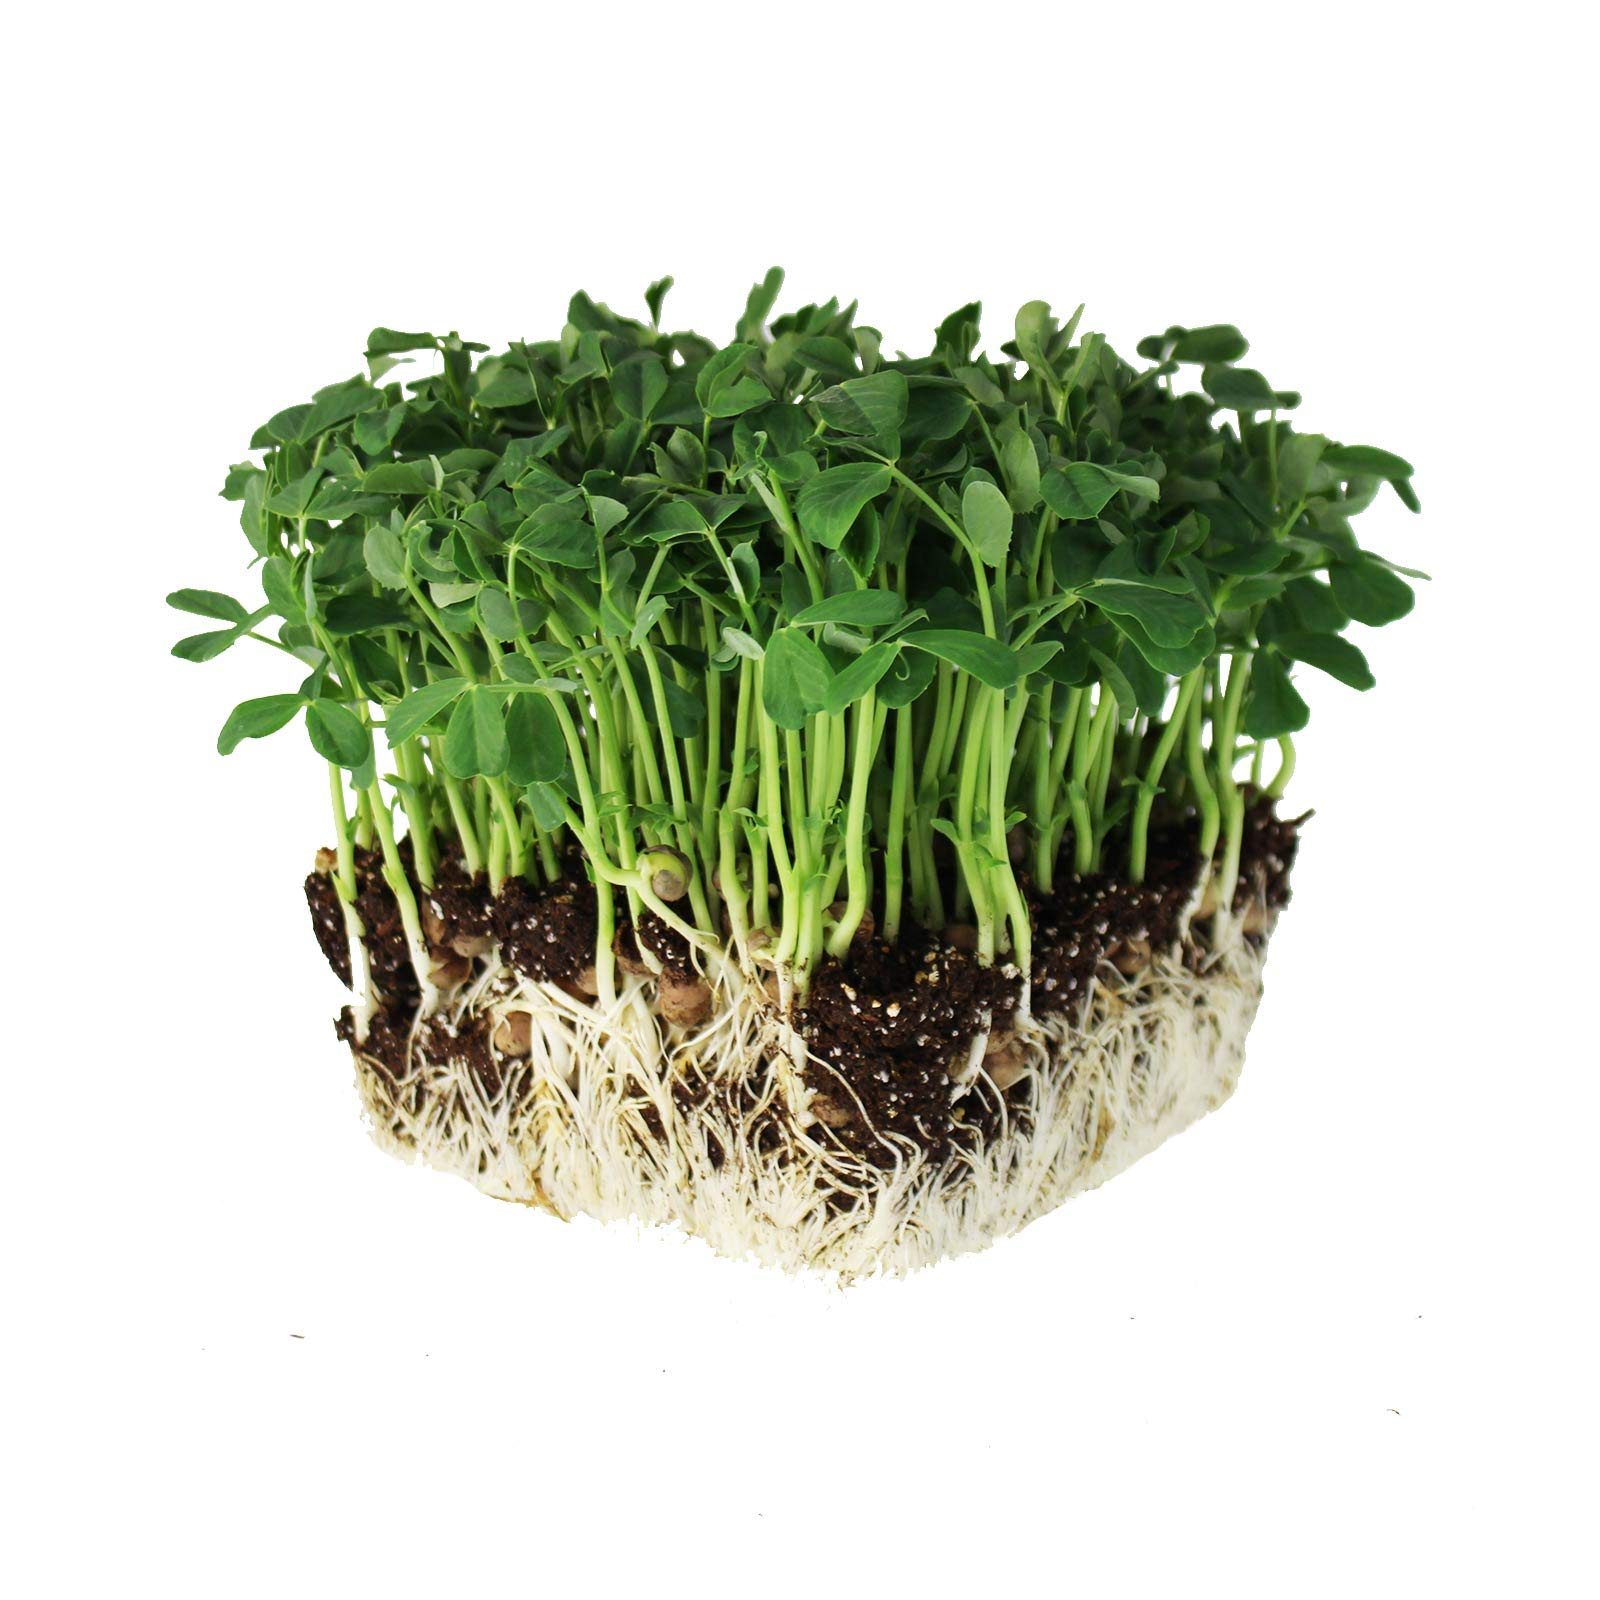 Speckled Pea Sprouting Seeds - 50 Lbs Bulk - Certified Organic, Non-GMO Green Pea Sprout Seeds - Sprouts & Microgreens by Mountain Valley Seed Company